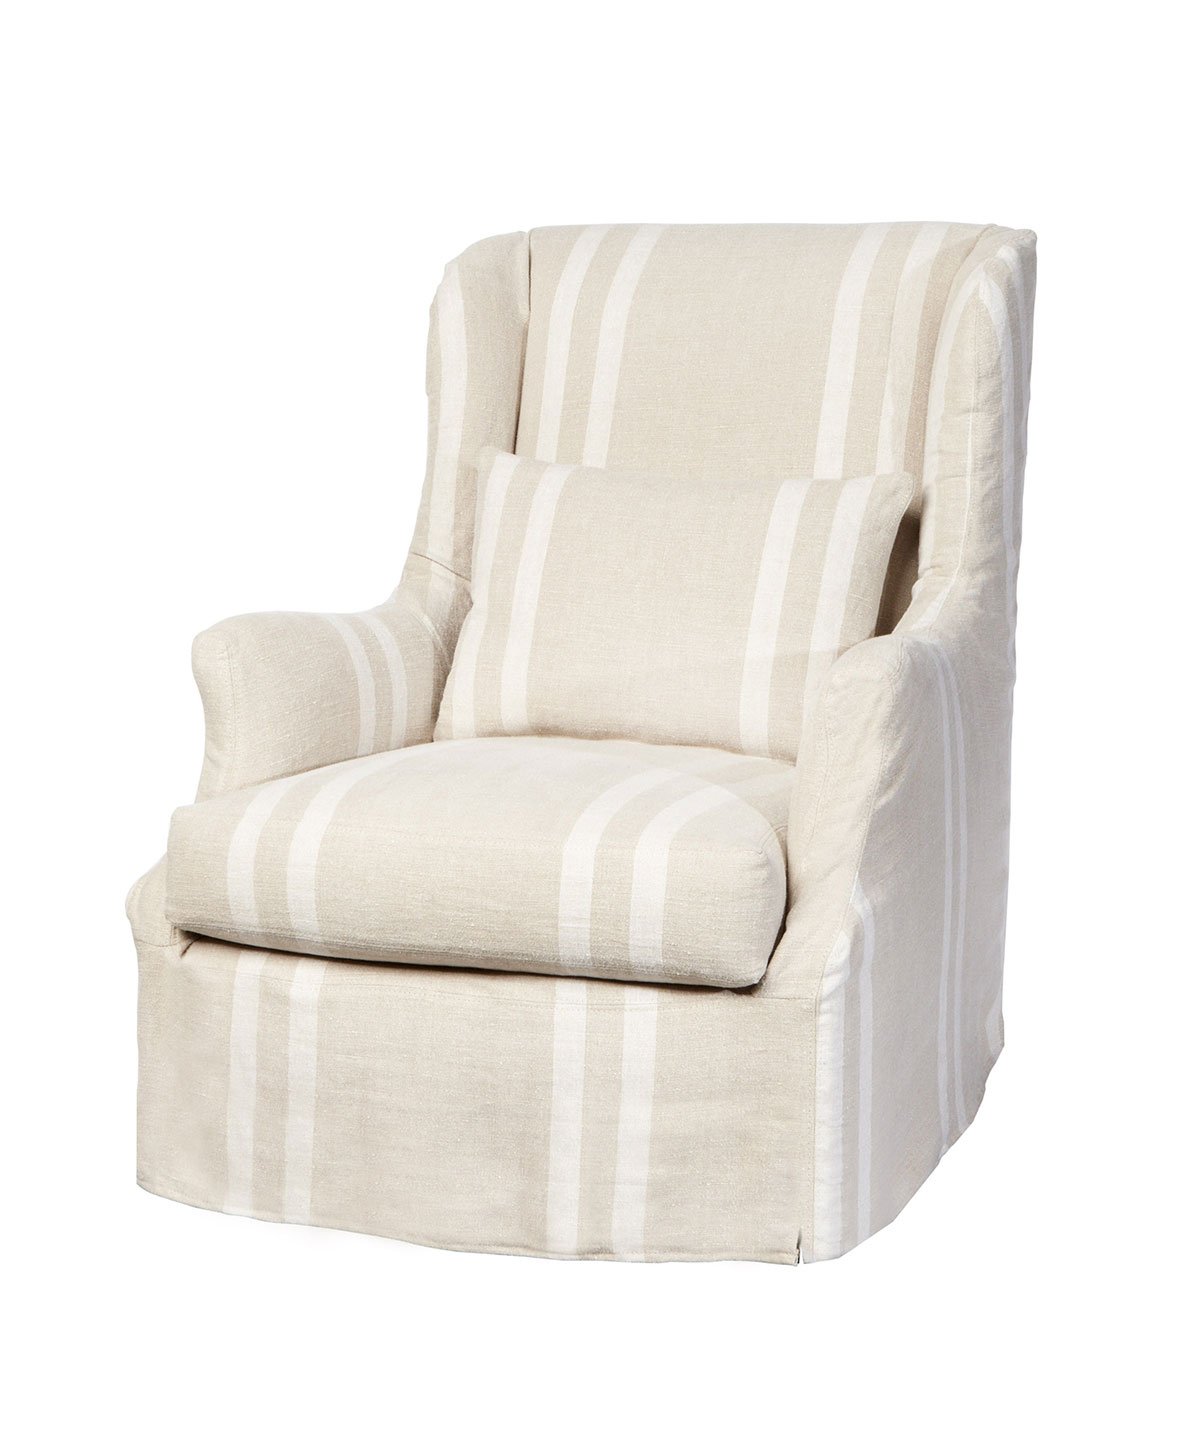 Sonoma Slipcovered Chair